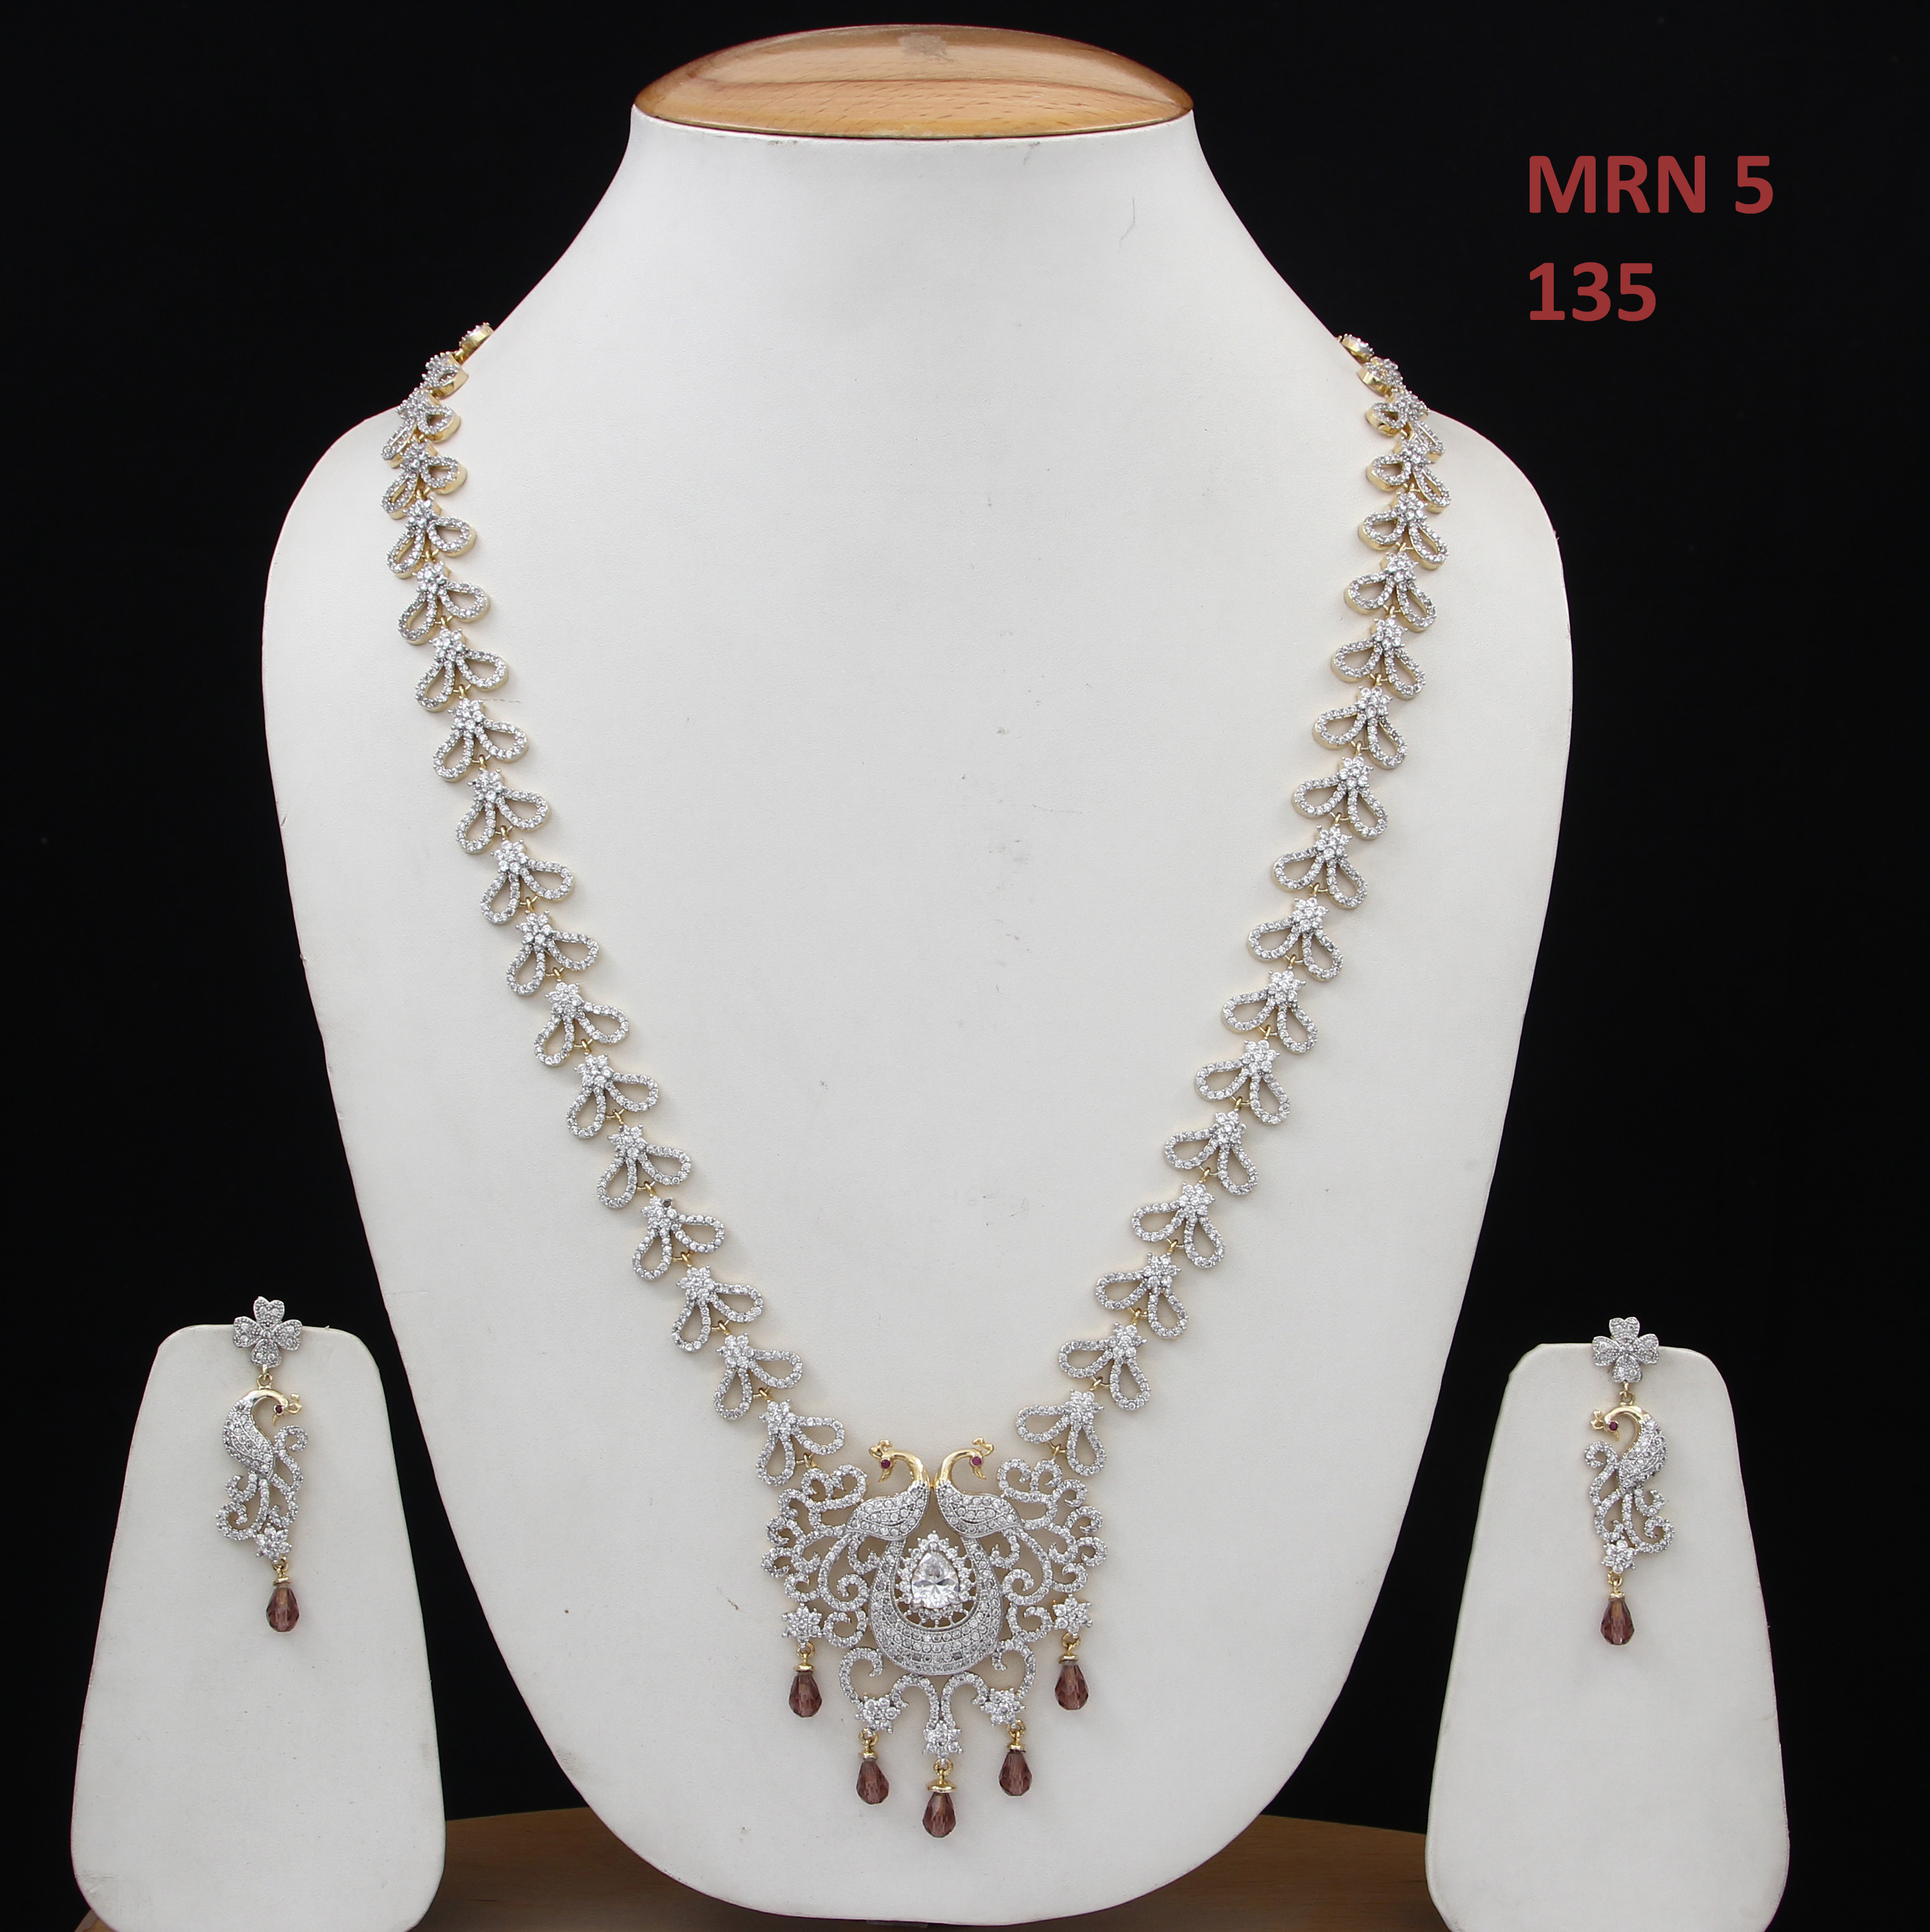 55Carat | 55Carat Maharani Fashion Necklace with Drop Earring Girls Ladies Wine CZ Unique Design Chokar Jewellery Set Gold Plated Silver Plated Chain Haar Handmade Jewellery for Women and Girls MRN 5-WINE